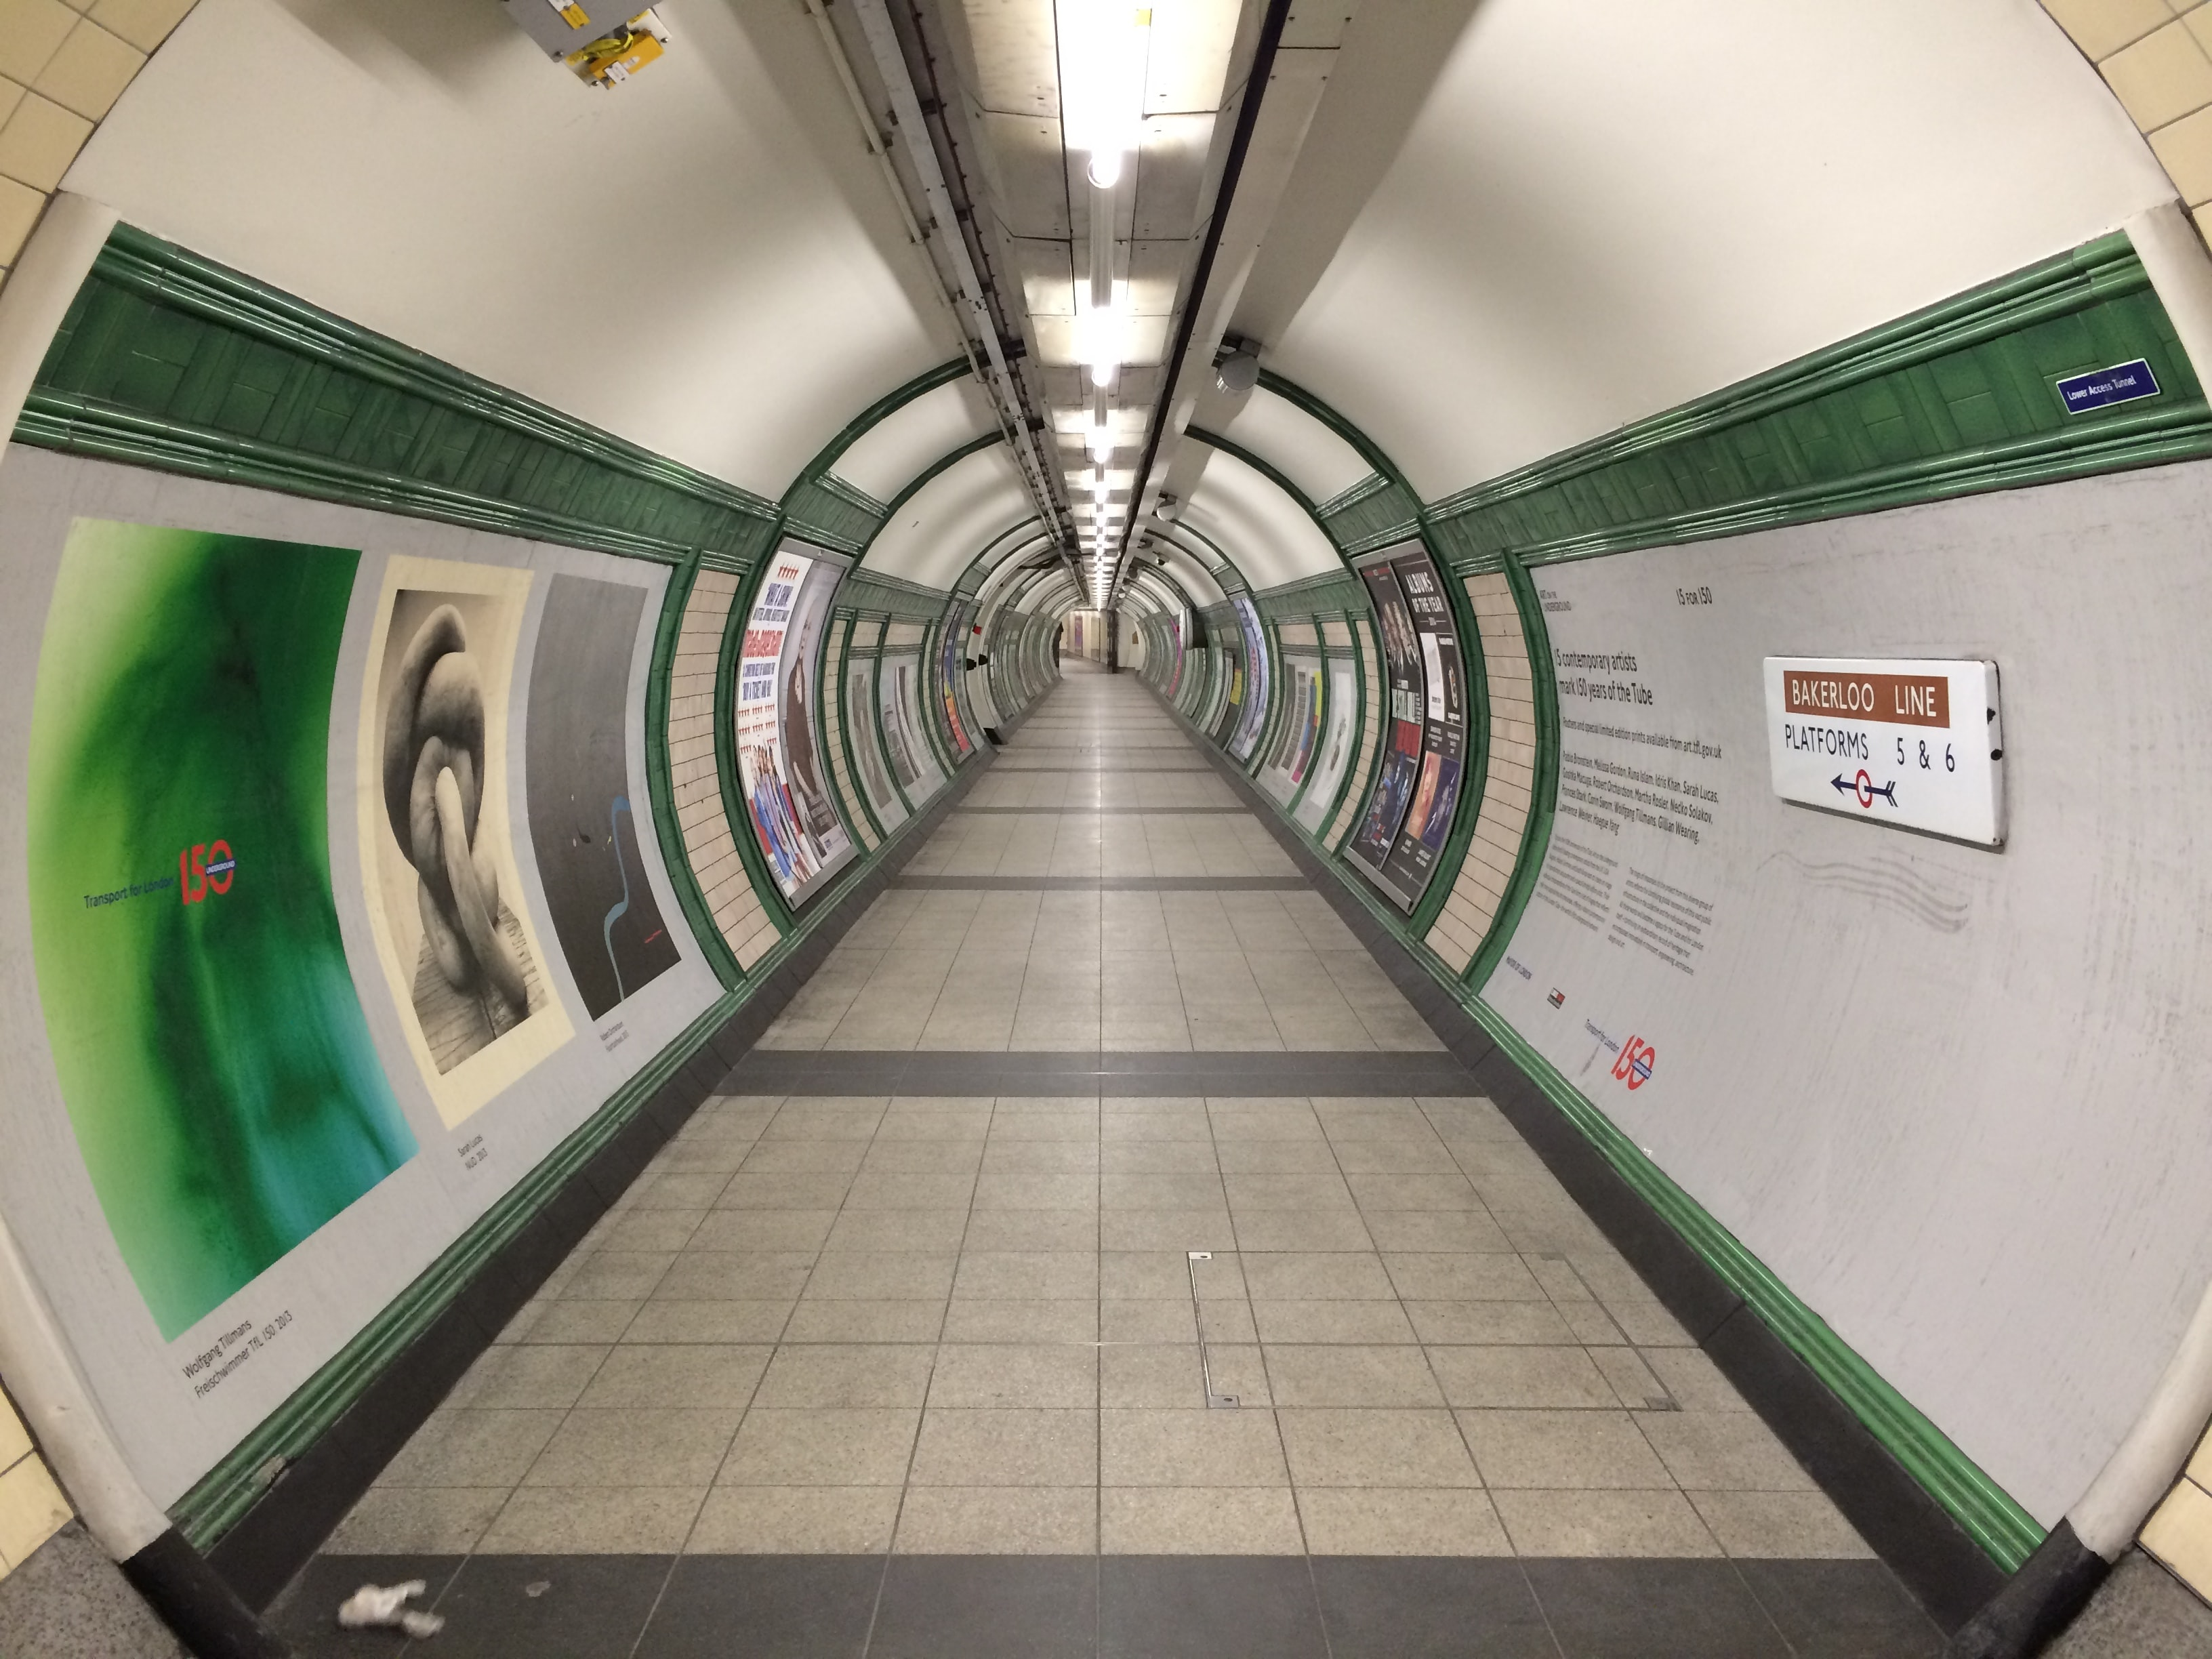 The tunnel to the Bakerloo line in the London Underground